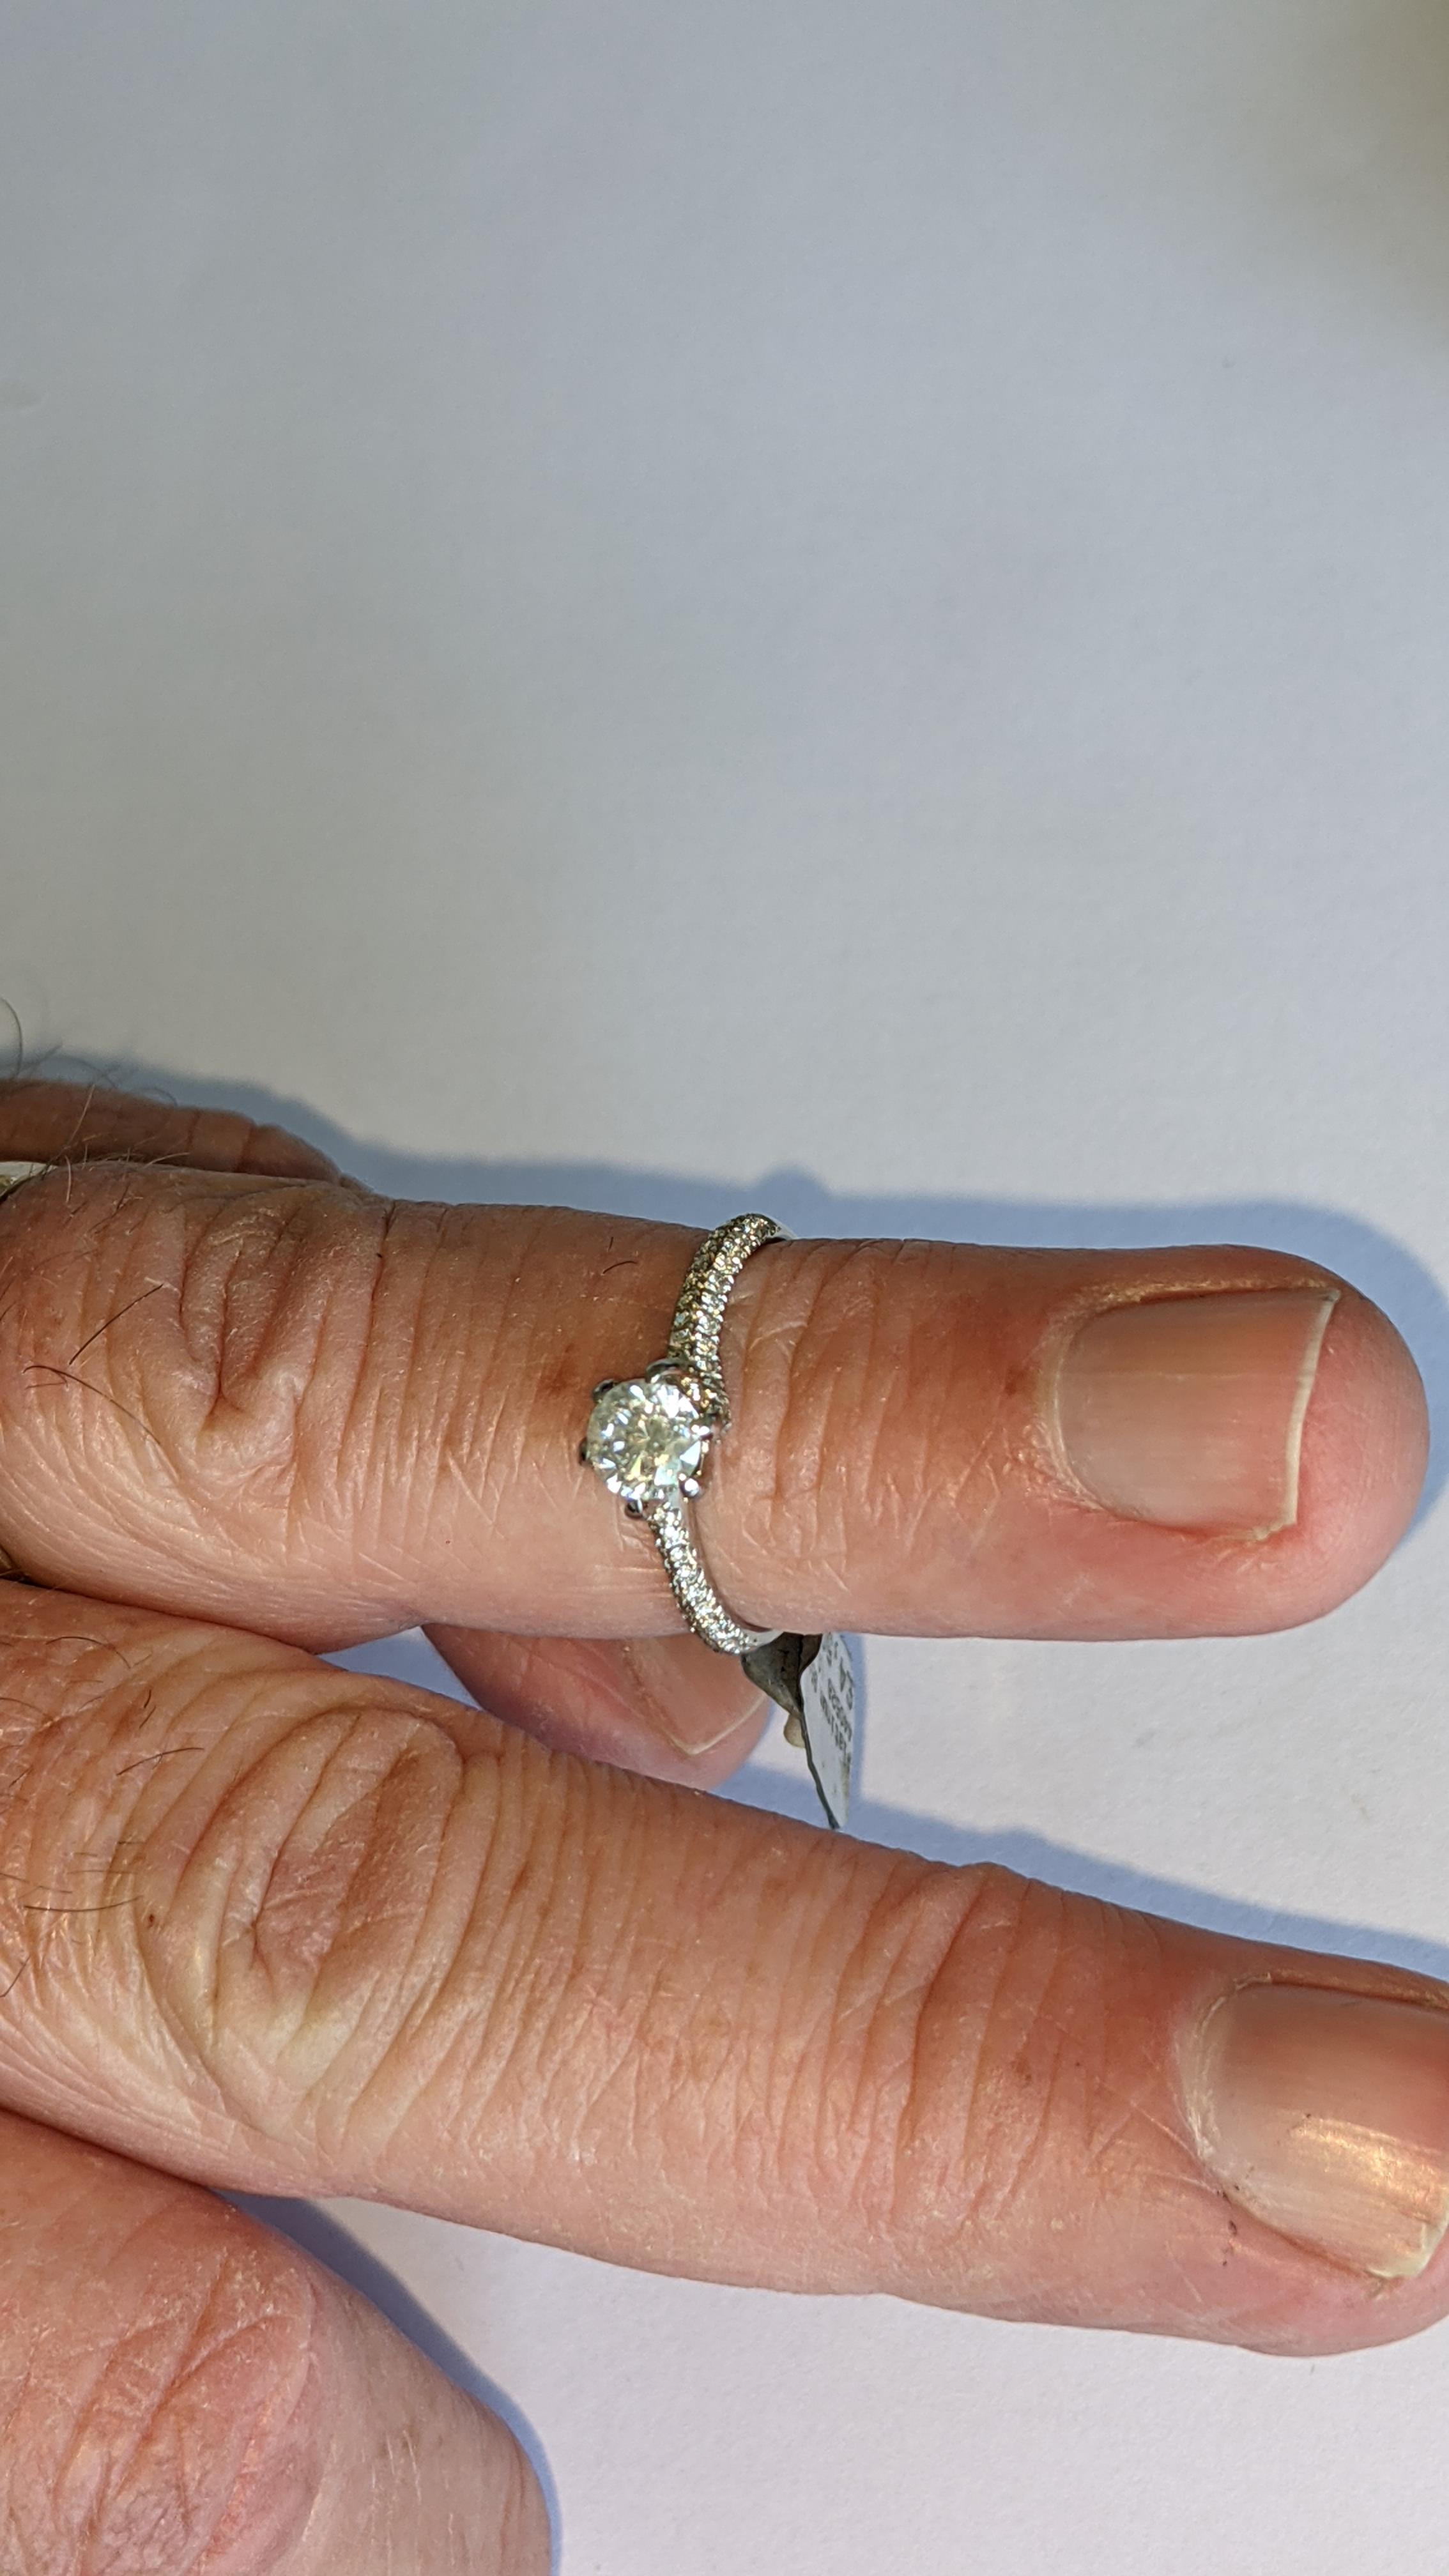 Platinum 950 diamond ring with 0.55ct central stone & 0.348ct of smaller stones on the shoulders. RR - Image 14 of 16